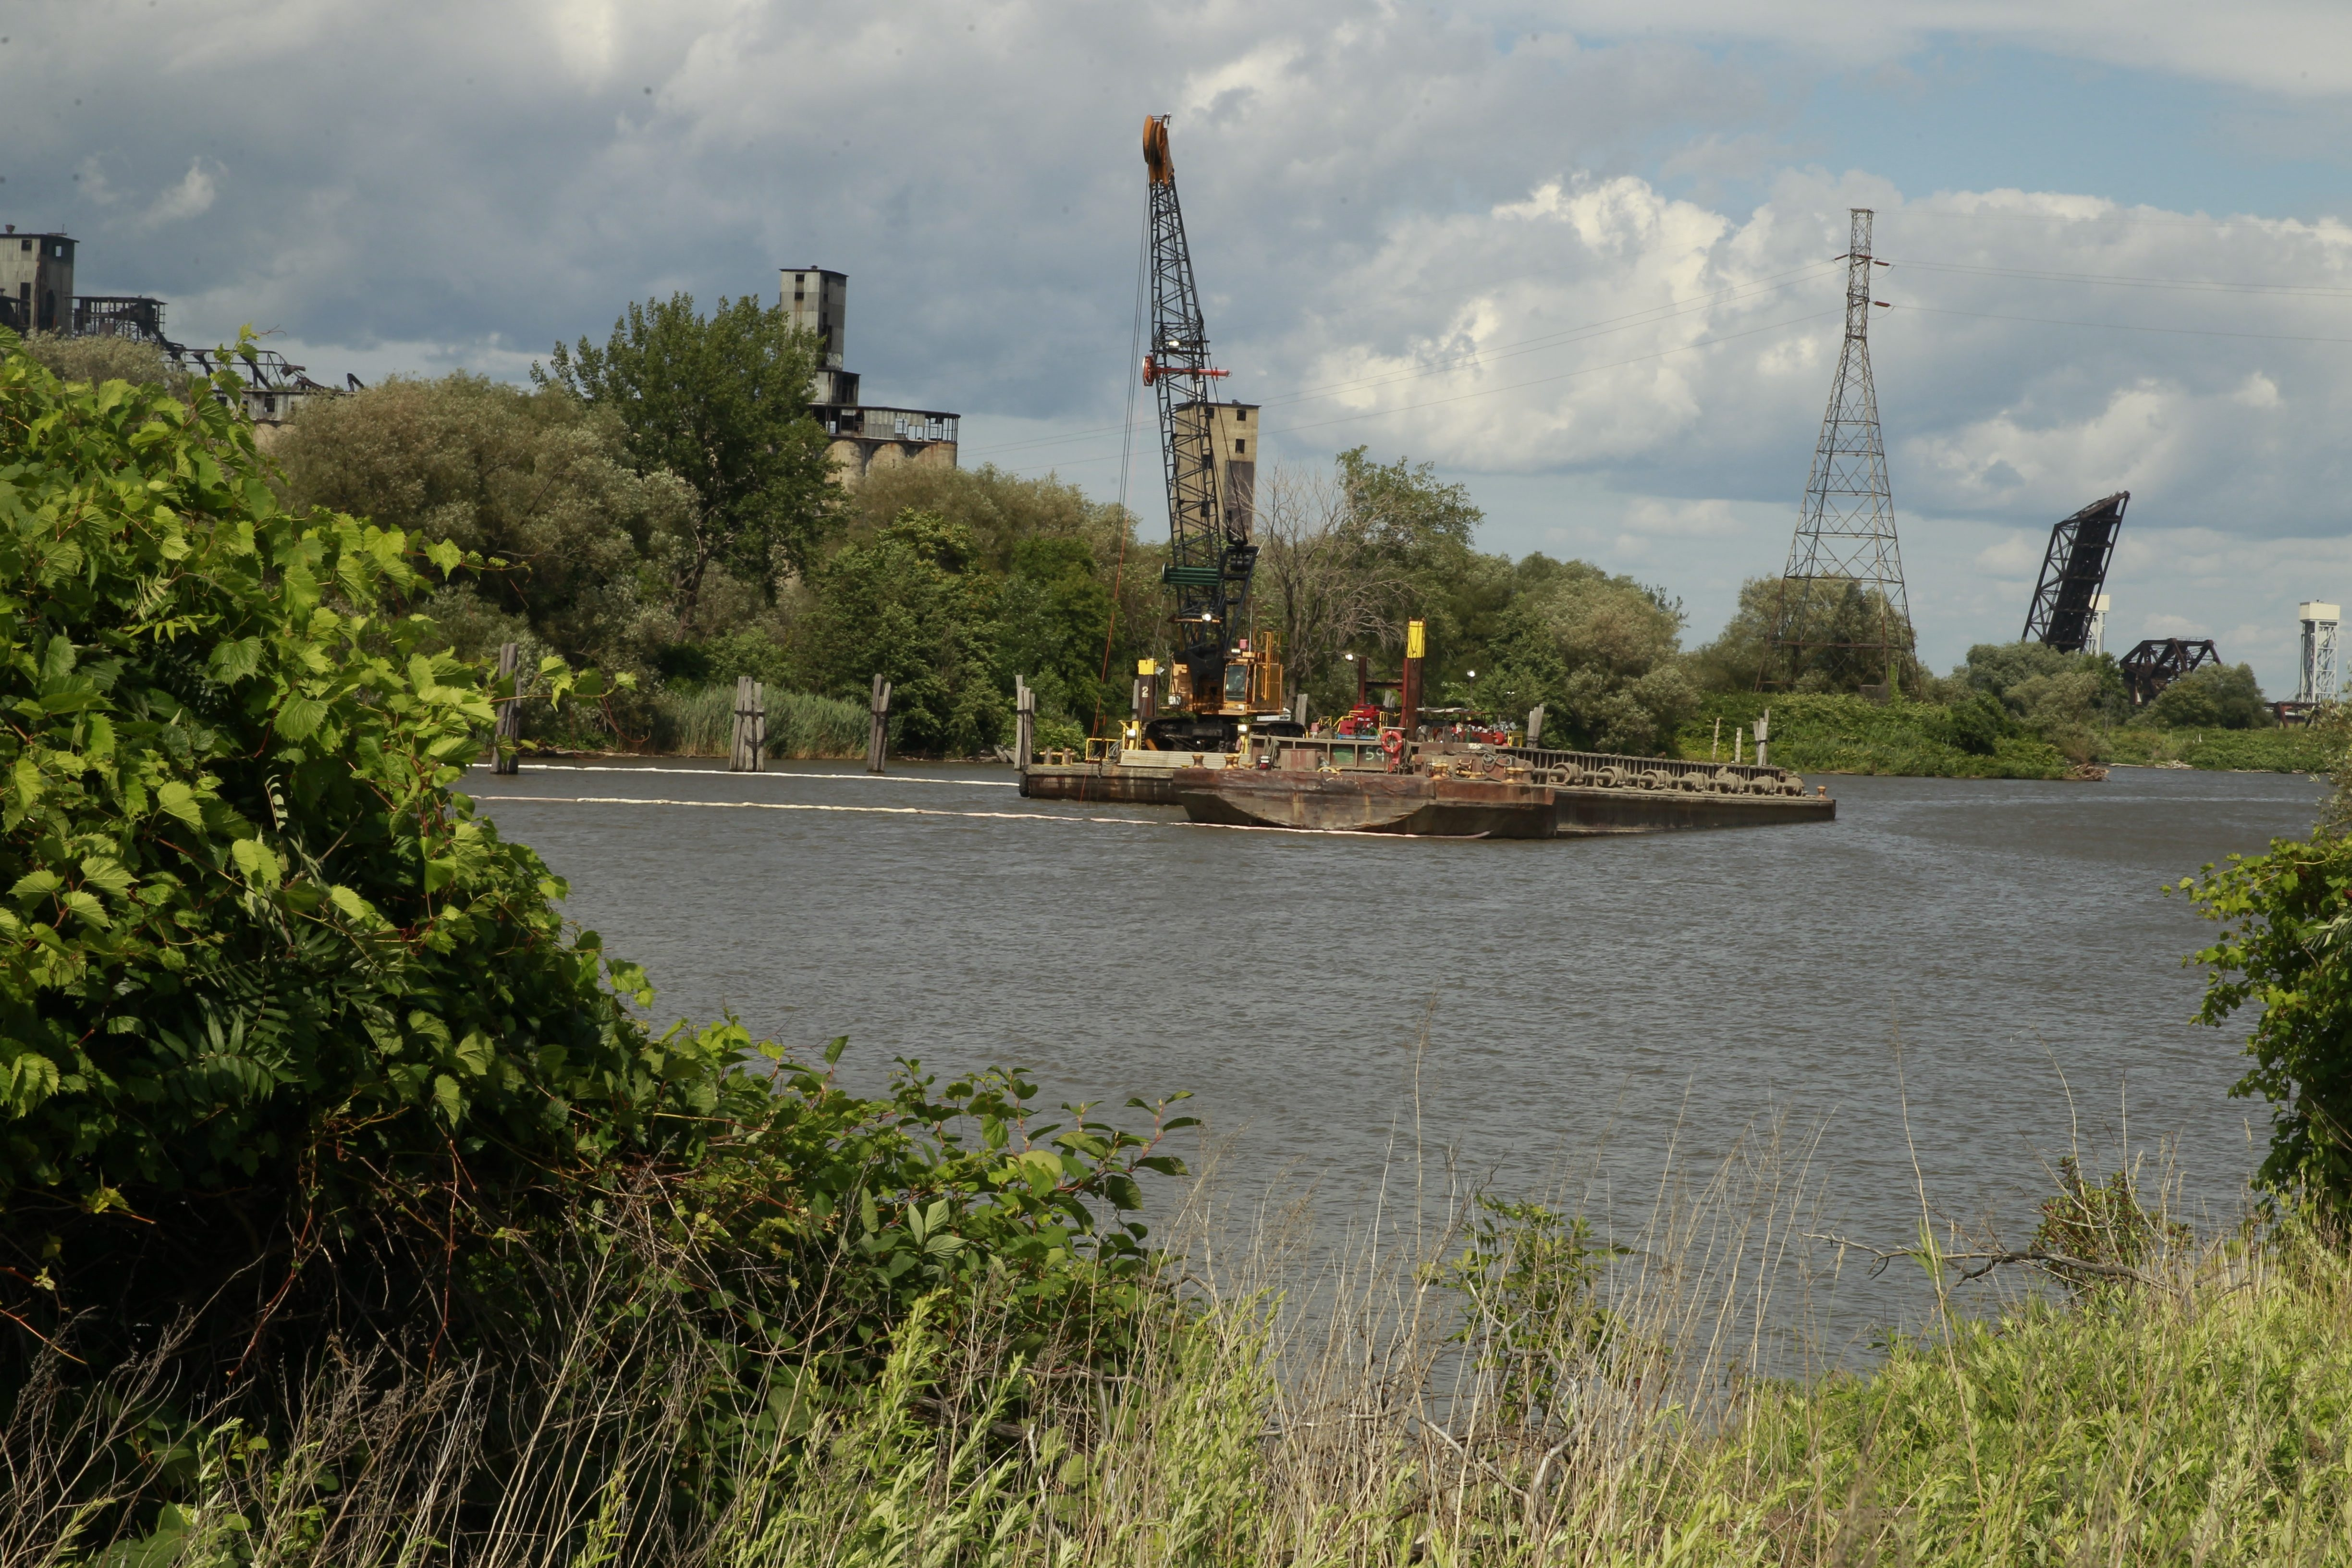 A large crane at the foot of Katherine Street is being used to dredge the Buffalo River. So far, more than 275,000 cubic yards of contaminated sludge – as well shopping carts, tires and even a vehicle or two – have been pulled from the water.